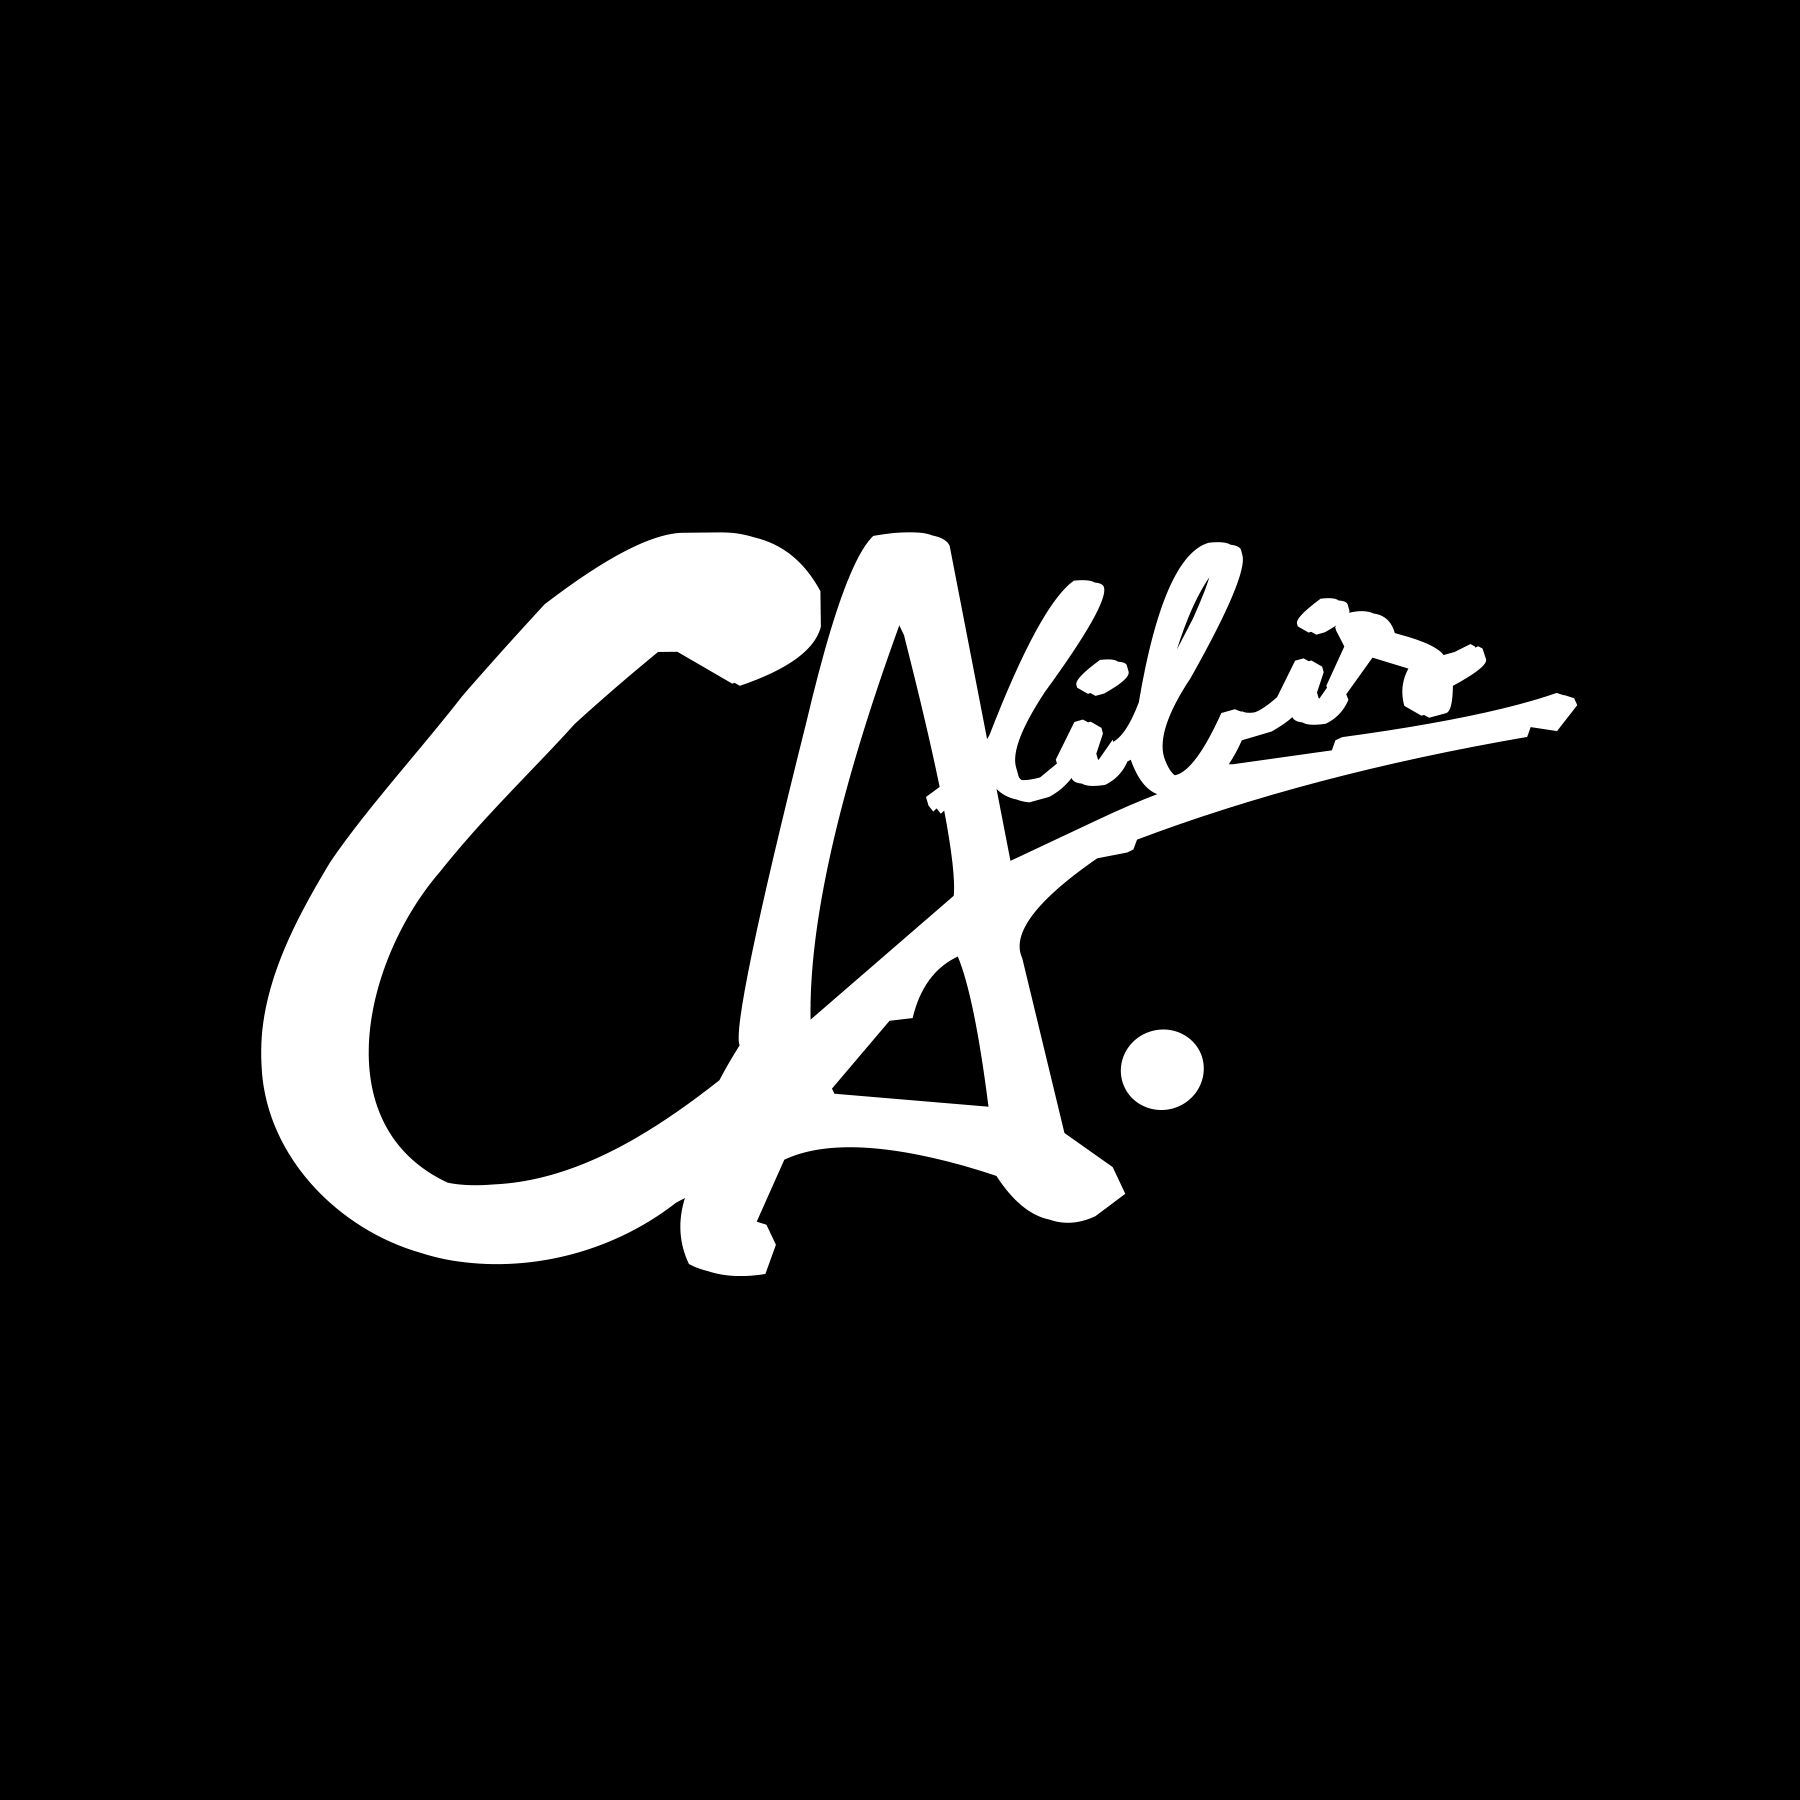 Calibis White Decal by Calibis Clothing